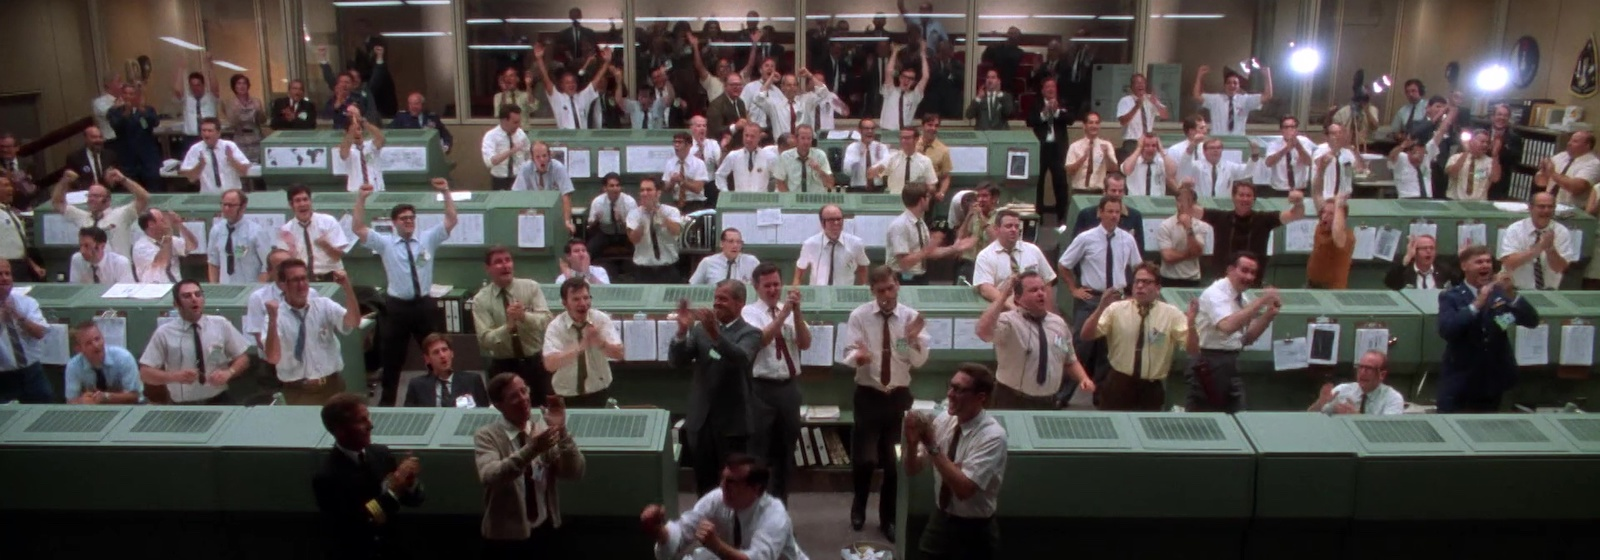 a large control room with many people clapping